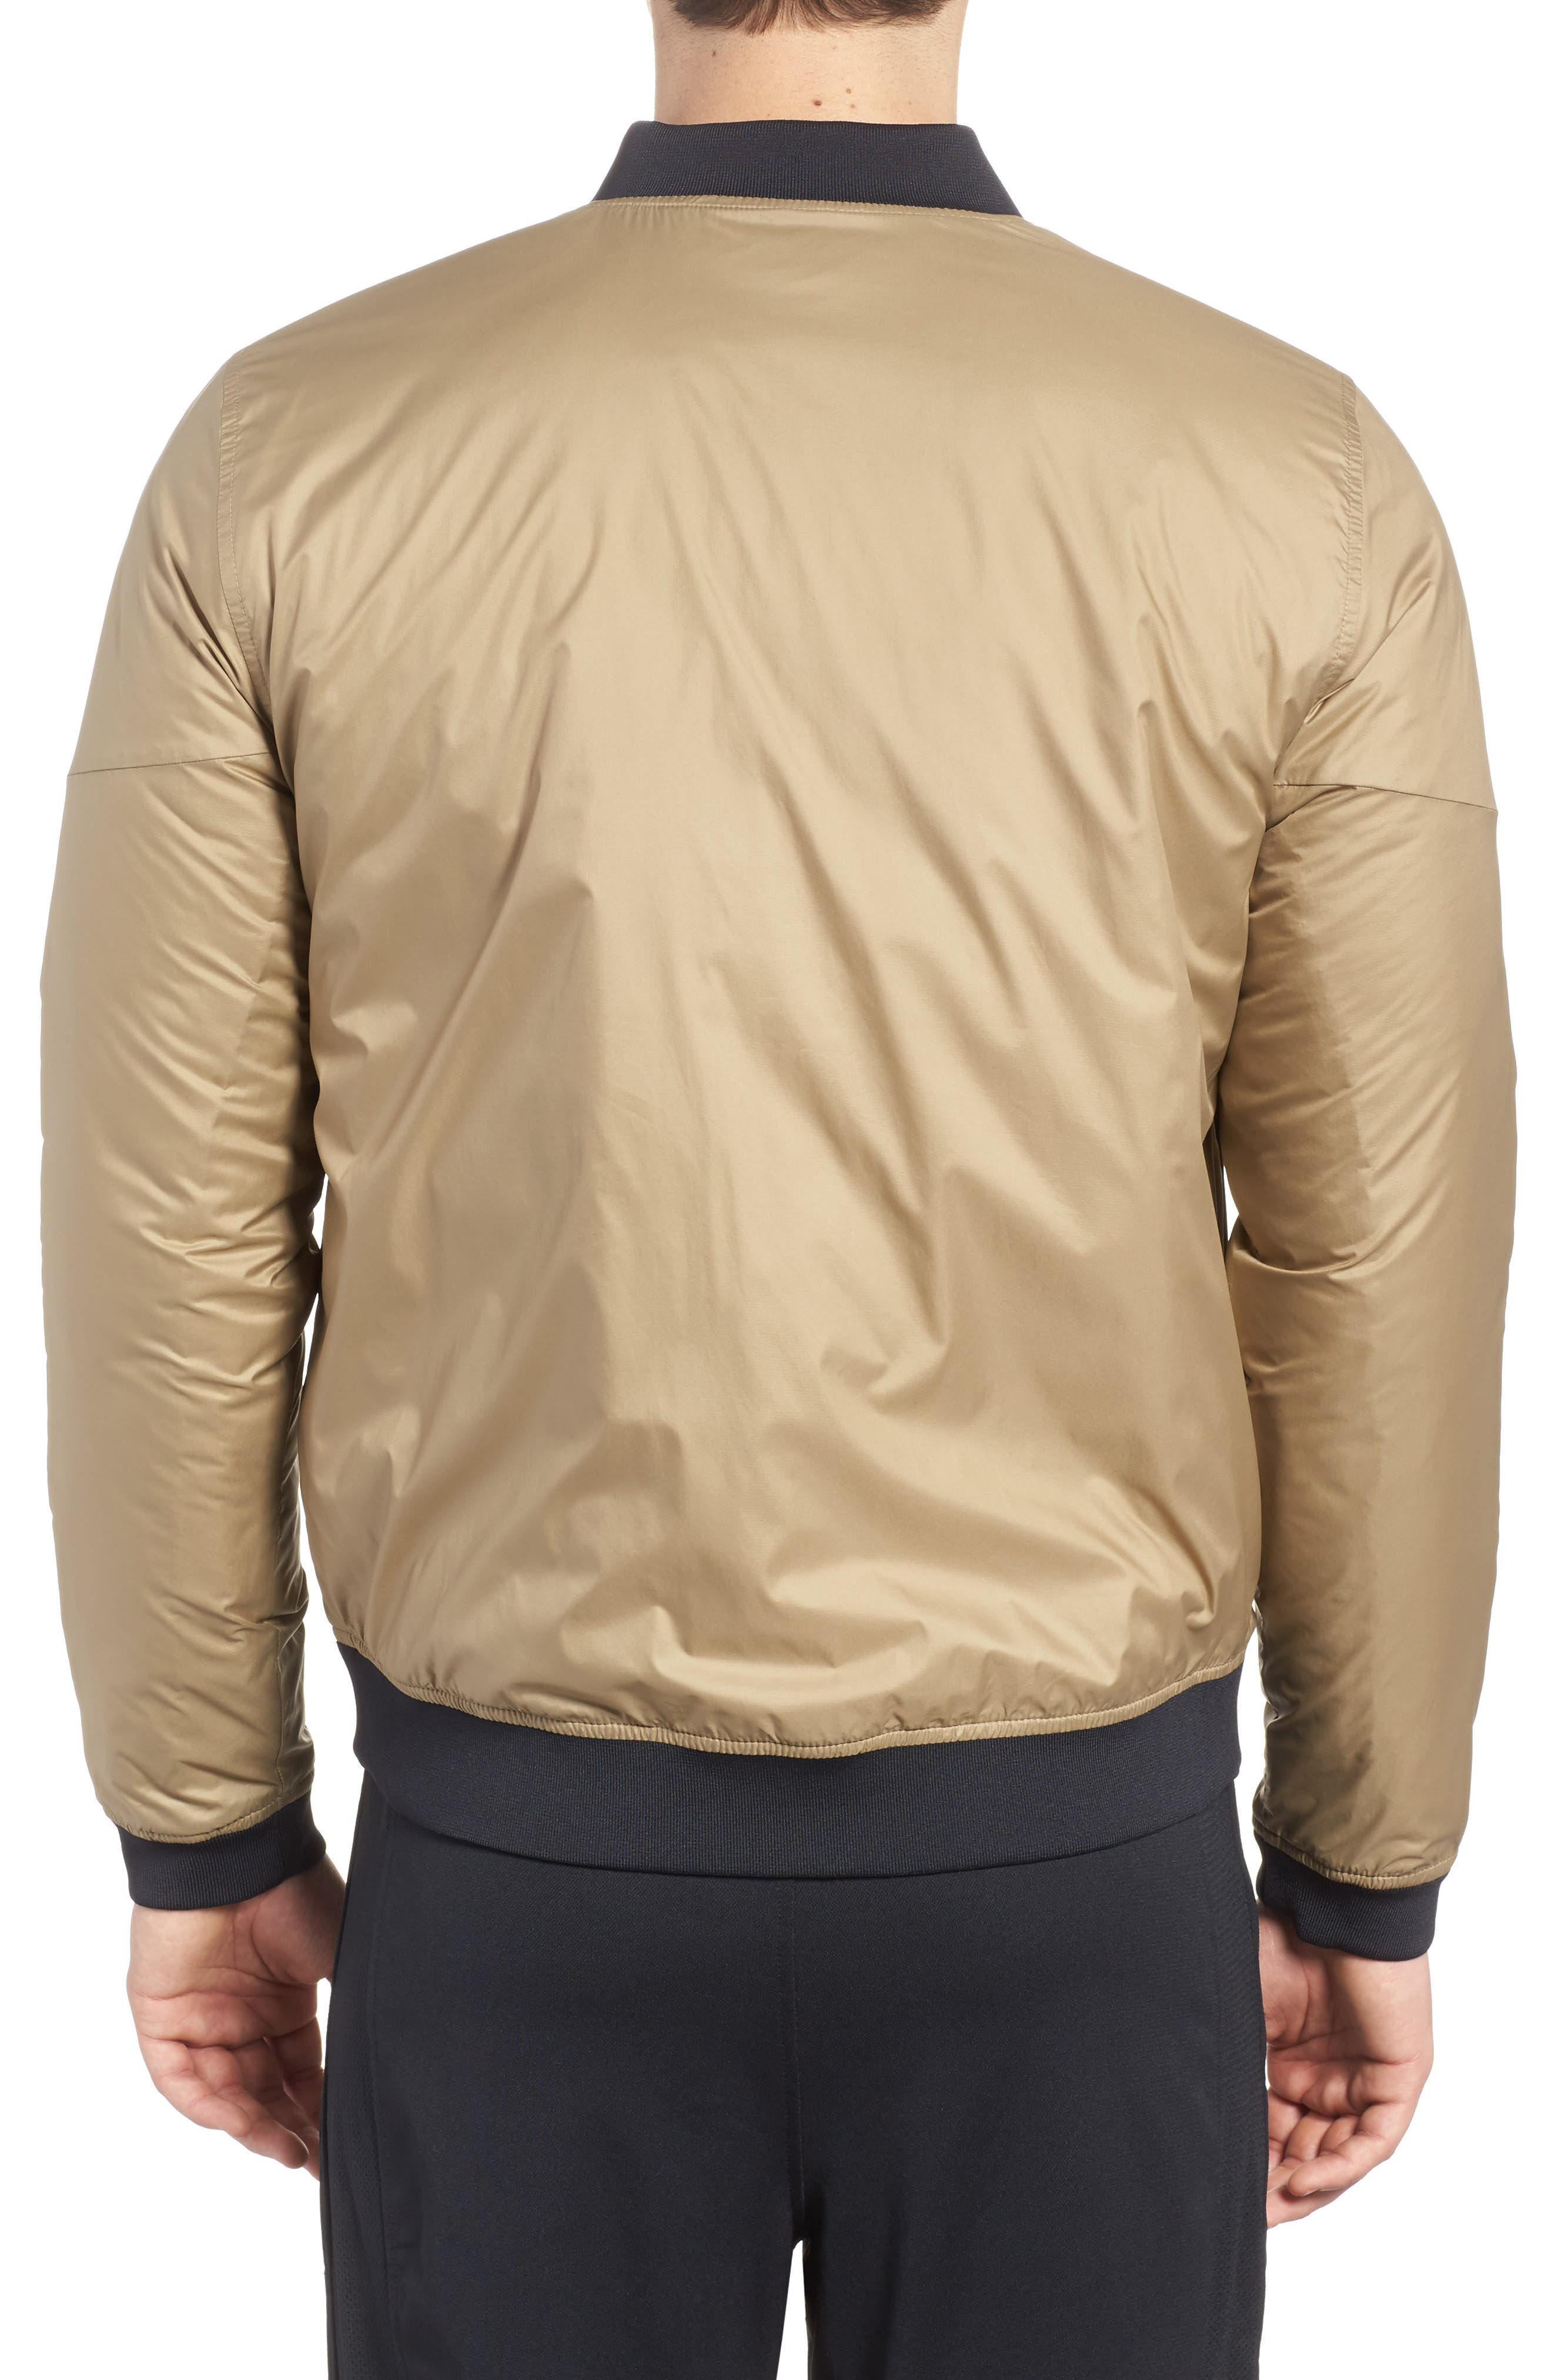 Sportstyle Reactor Reversible Bomber Jacket,                             Alternate thumbnail 2, color,                             Canvas / Bay Brown / Black